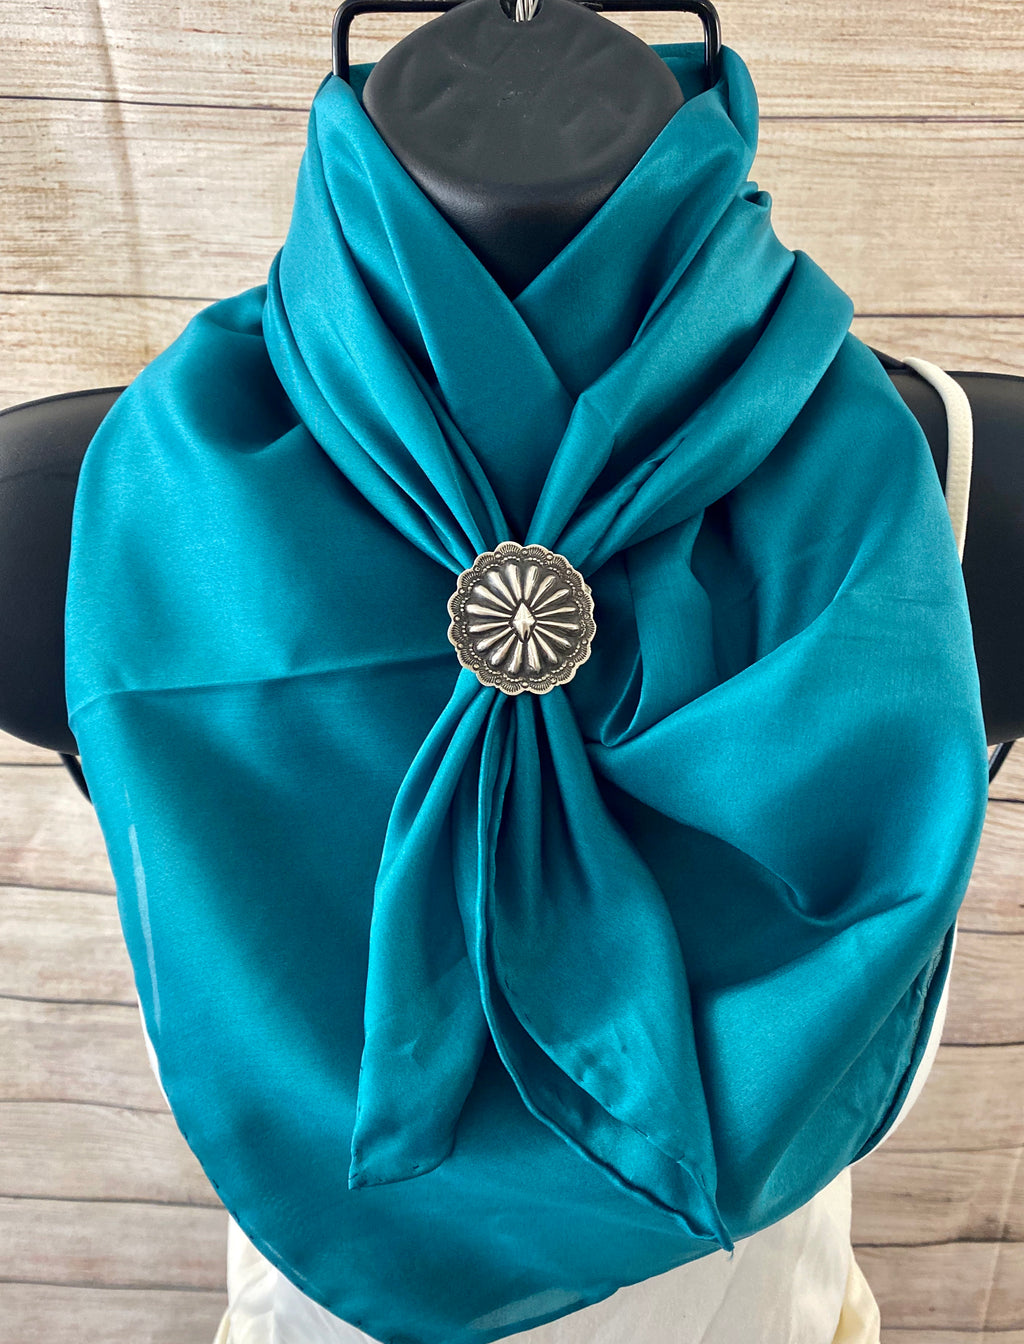 The Teal Wild Rag - Ny Texas Style Boutique